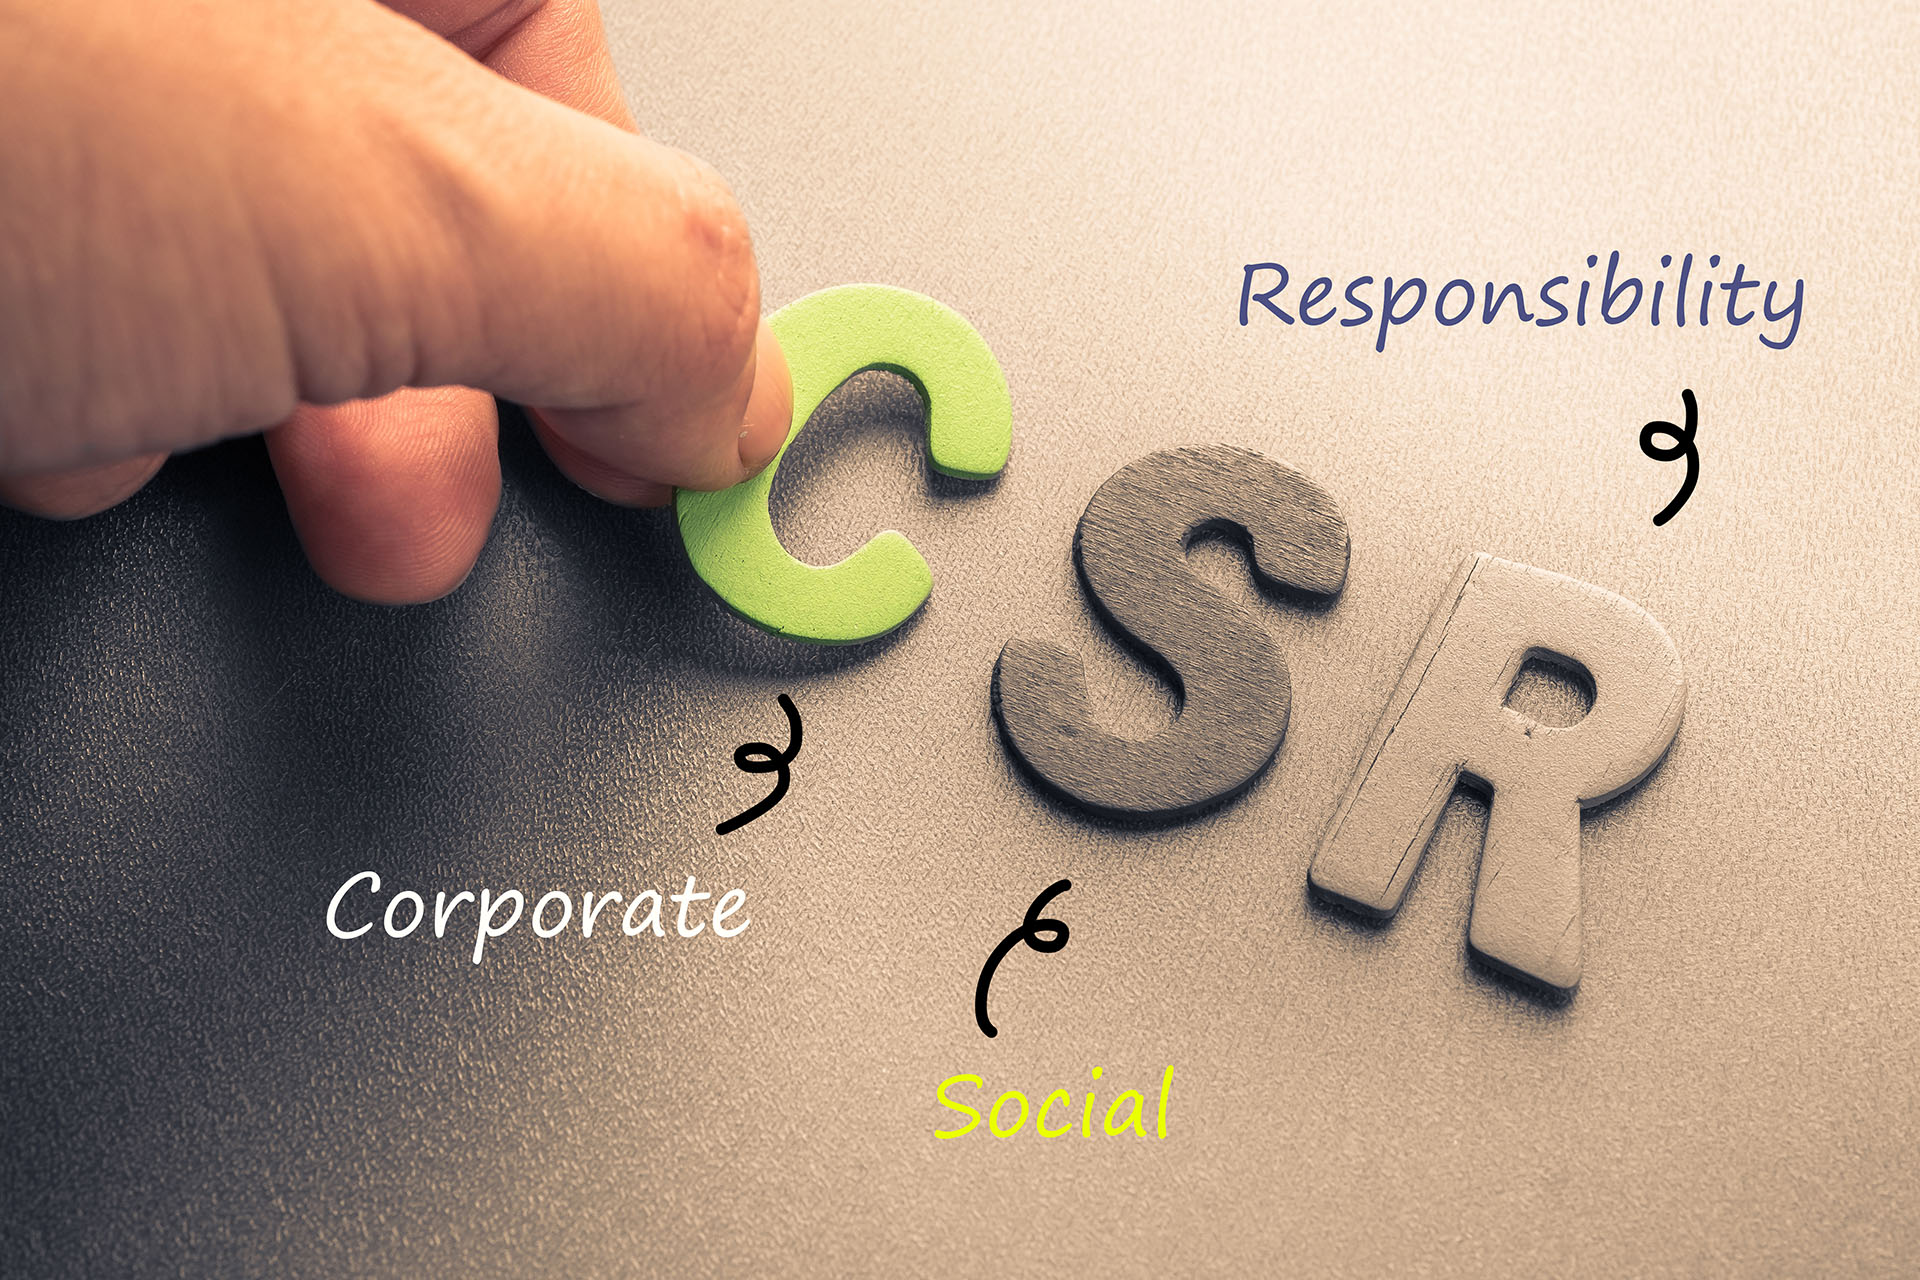 CSR, Sustainability, Authenticity, Corporate Social Responsibility, GRI Reporting, Health, Safety and the Environment, Middle East, Dubai, EHS, Sustainability Practitioner Program, Corporate Sustainability Leadership, Sustainability, Environment, CSE, Sustainability Academy, Corporate Responsibility|